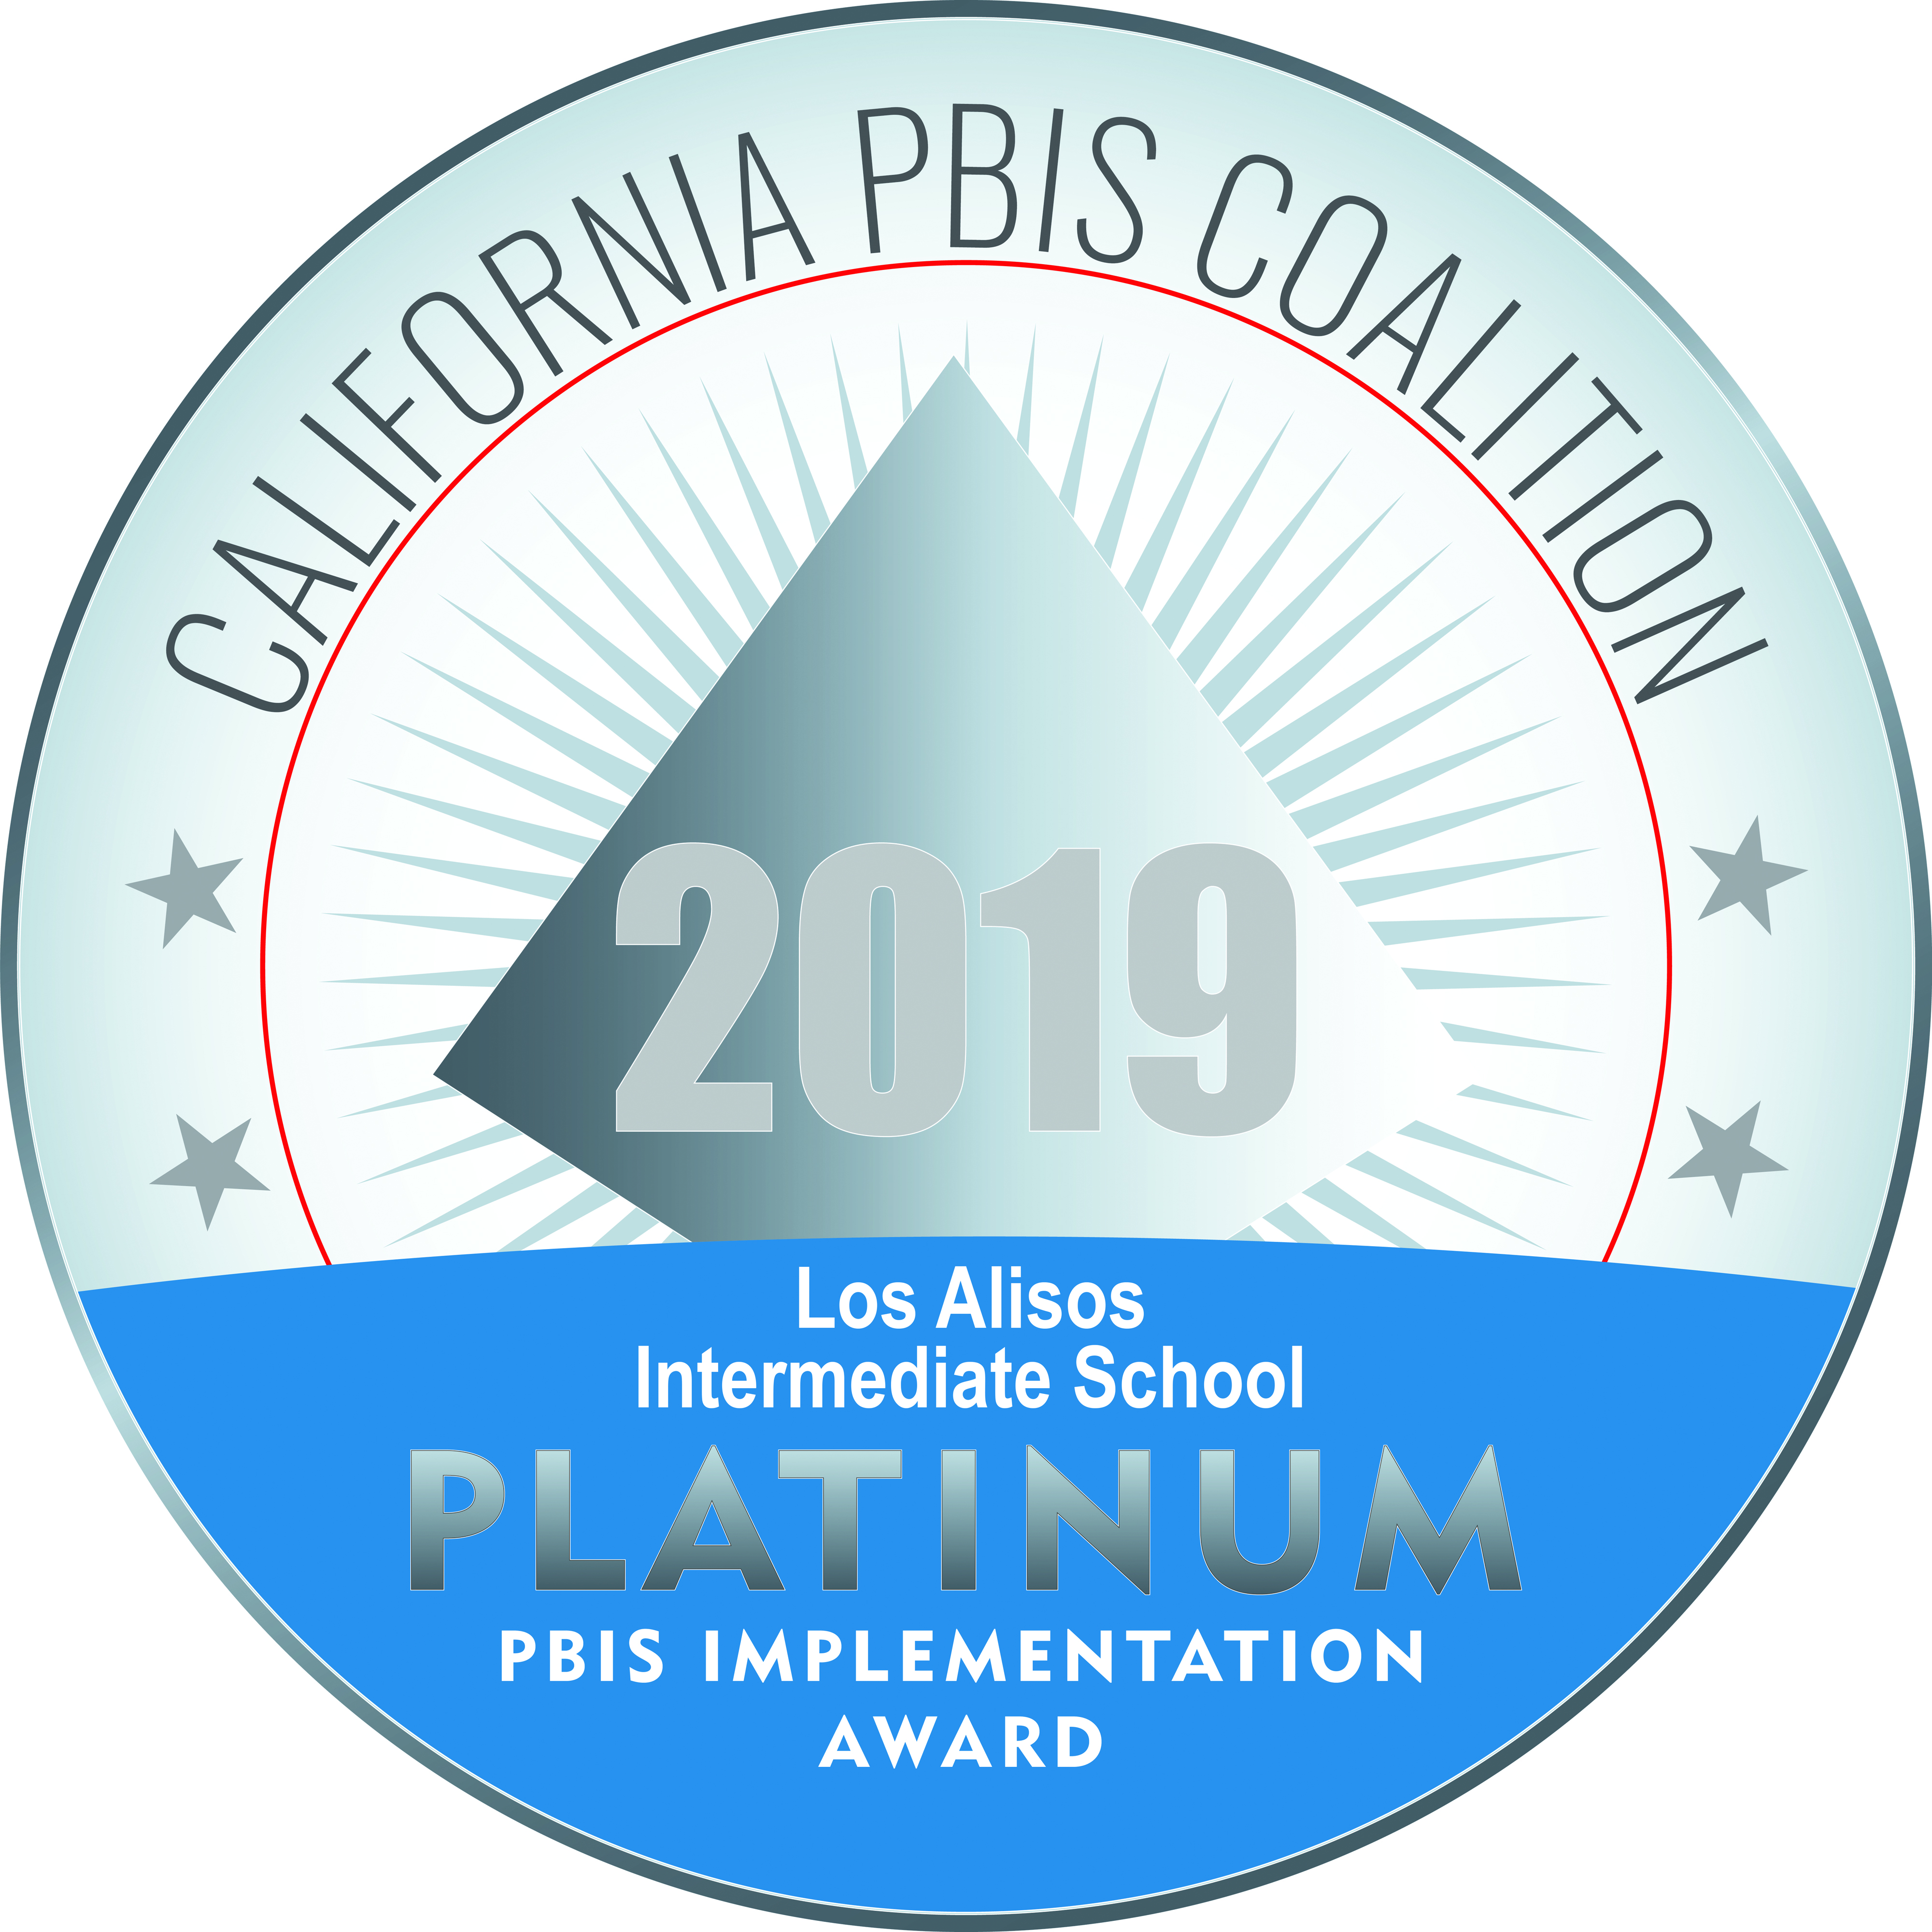 Platinum award recognizing Los Alisos for 2019